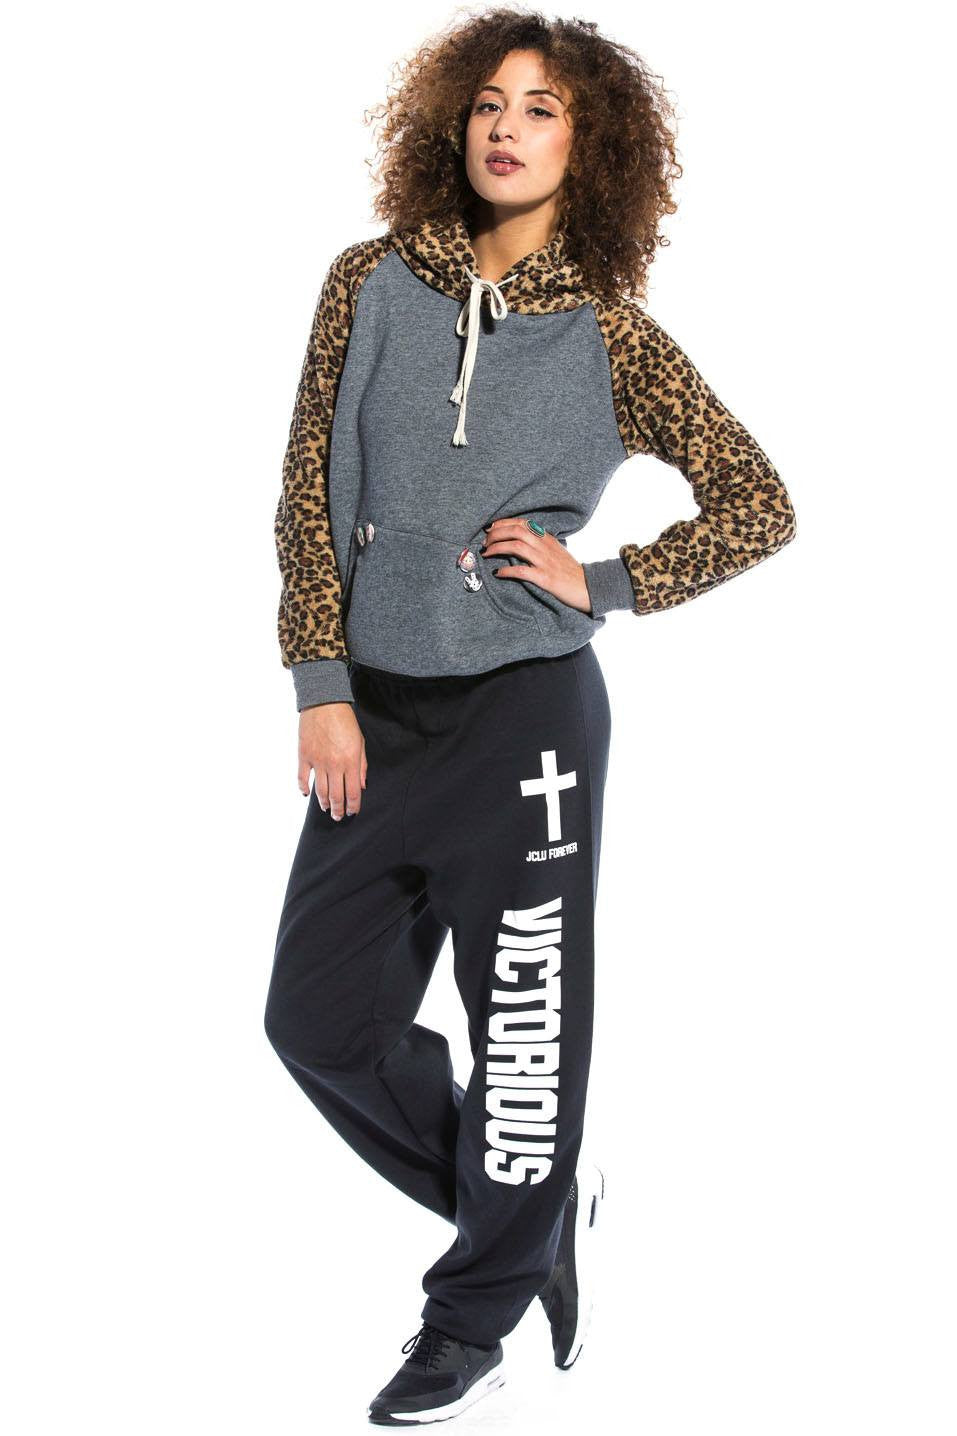 Victorious Sweatpants Black - JCLU Forever - 1